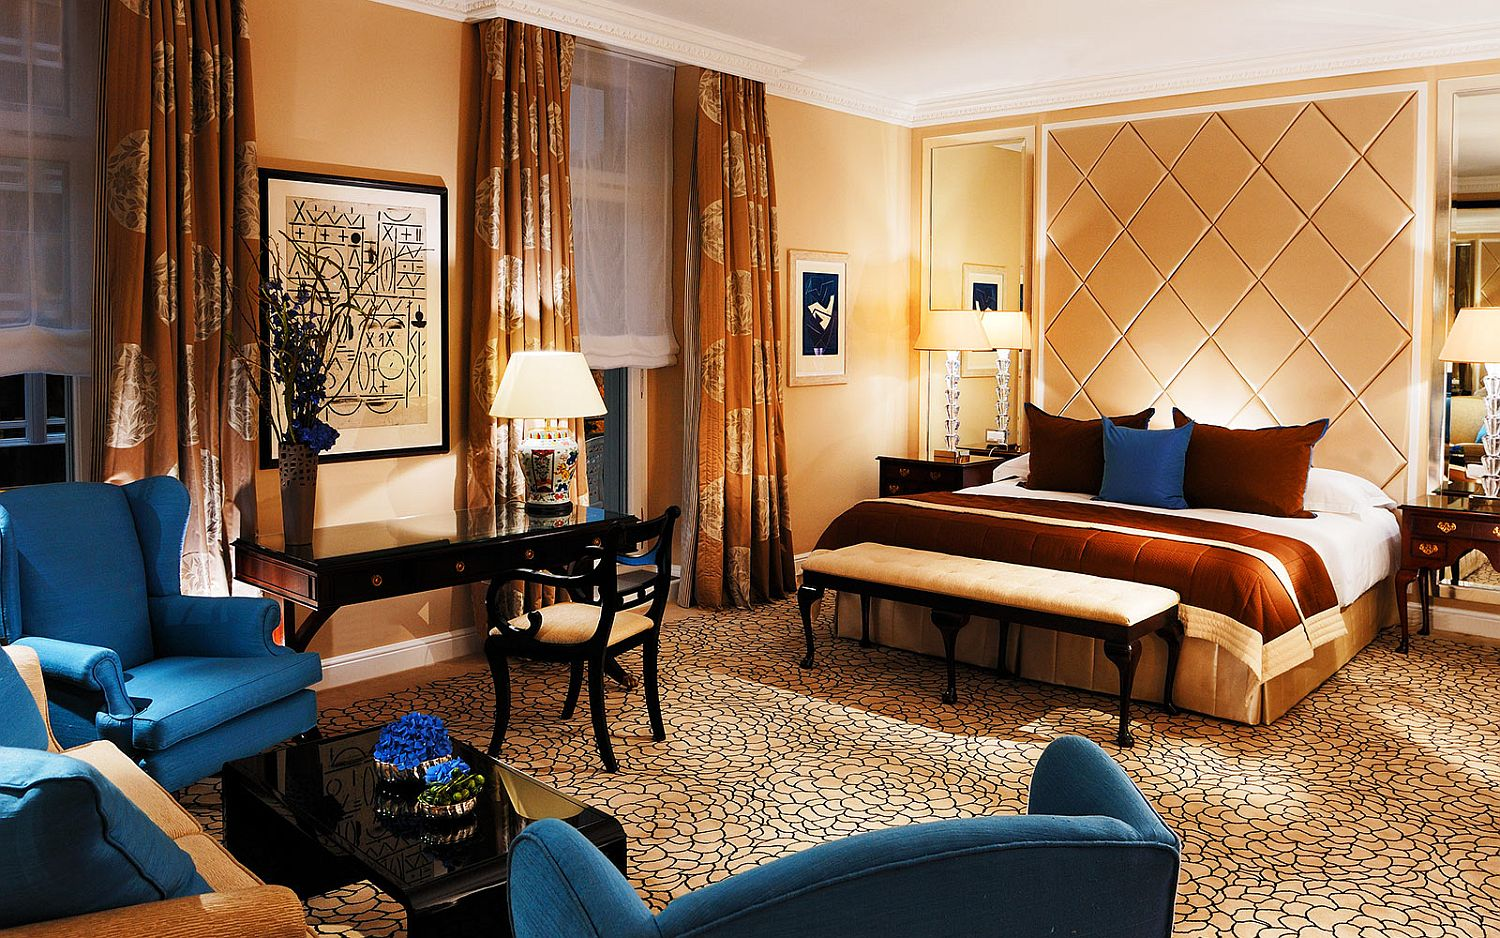 World class suites and romantic getaways welcome you at the Baur au Lac in Zurich